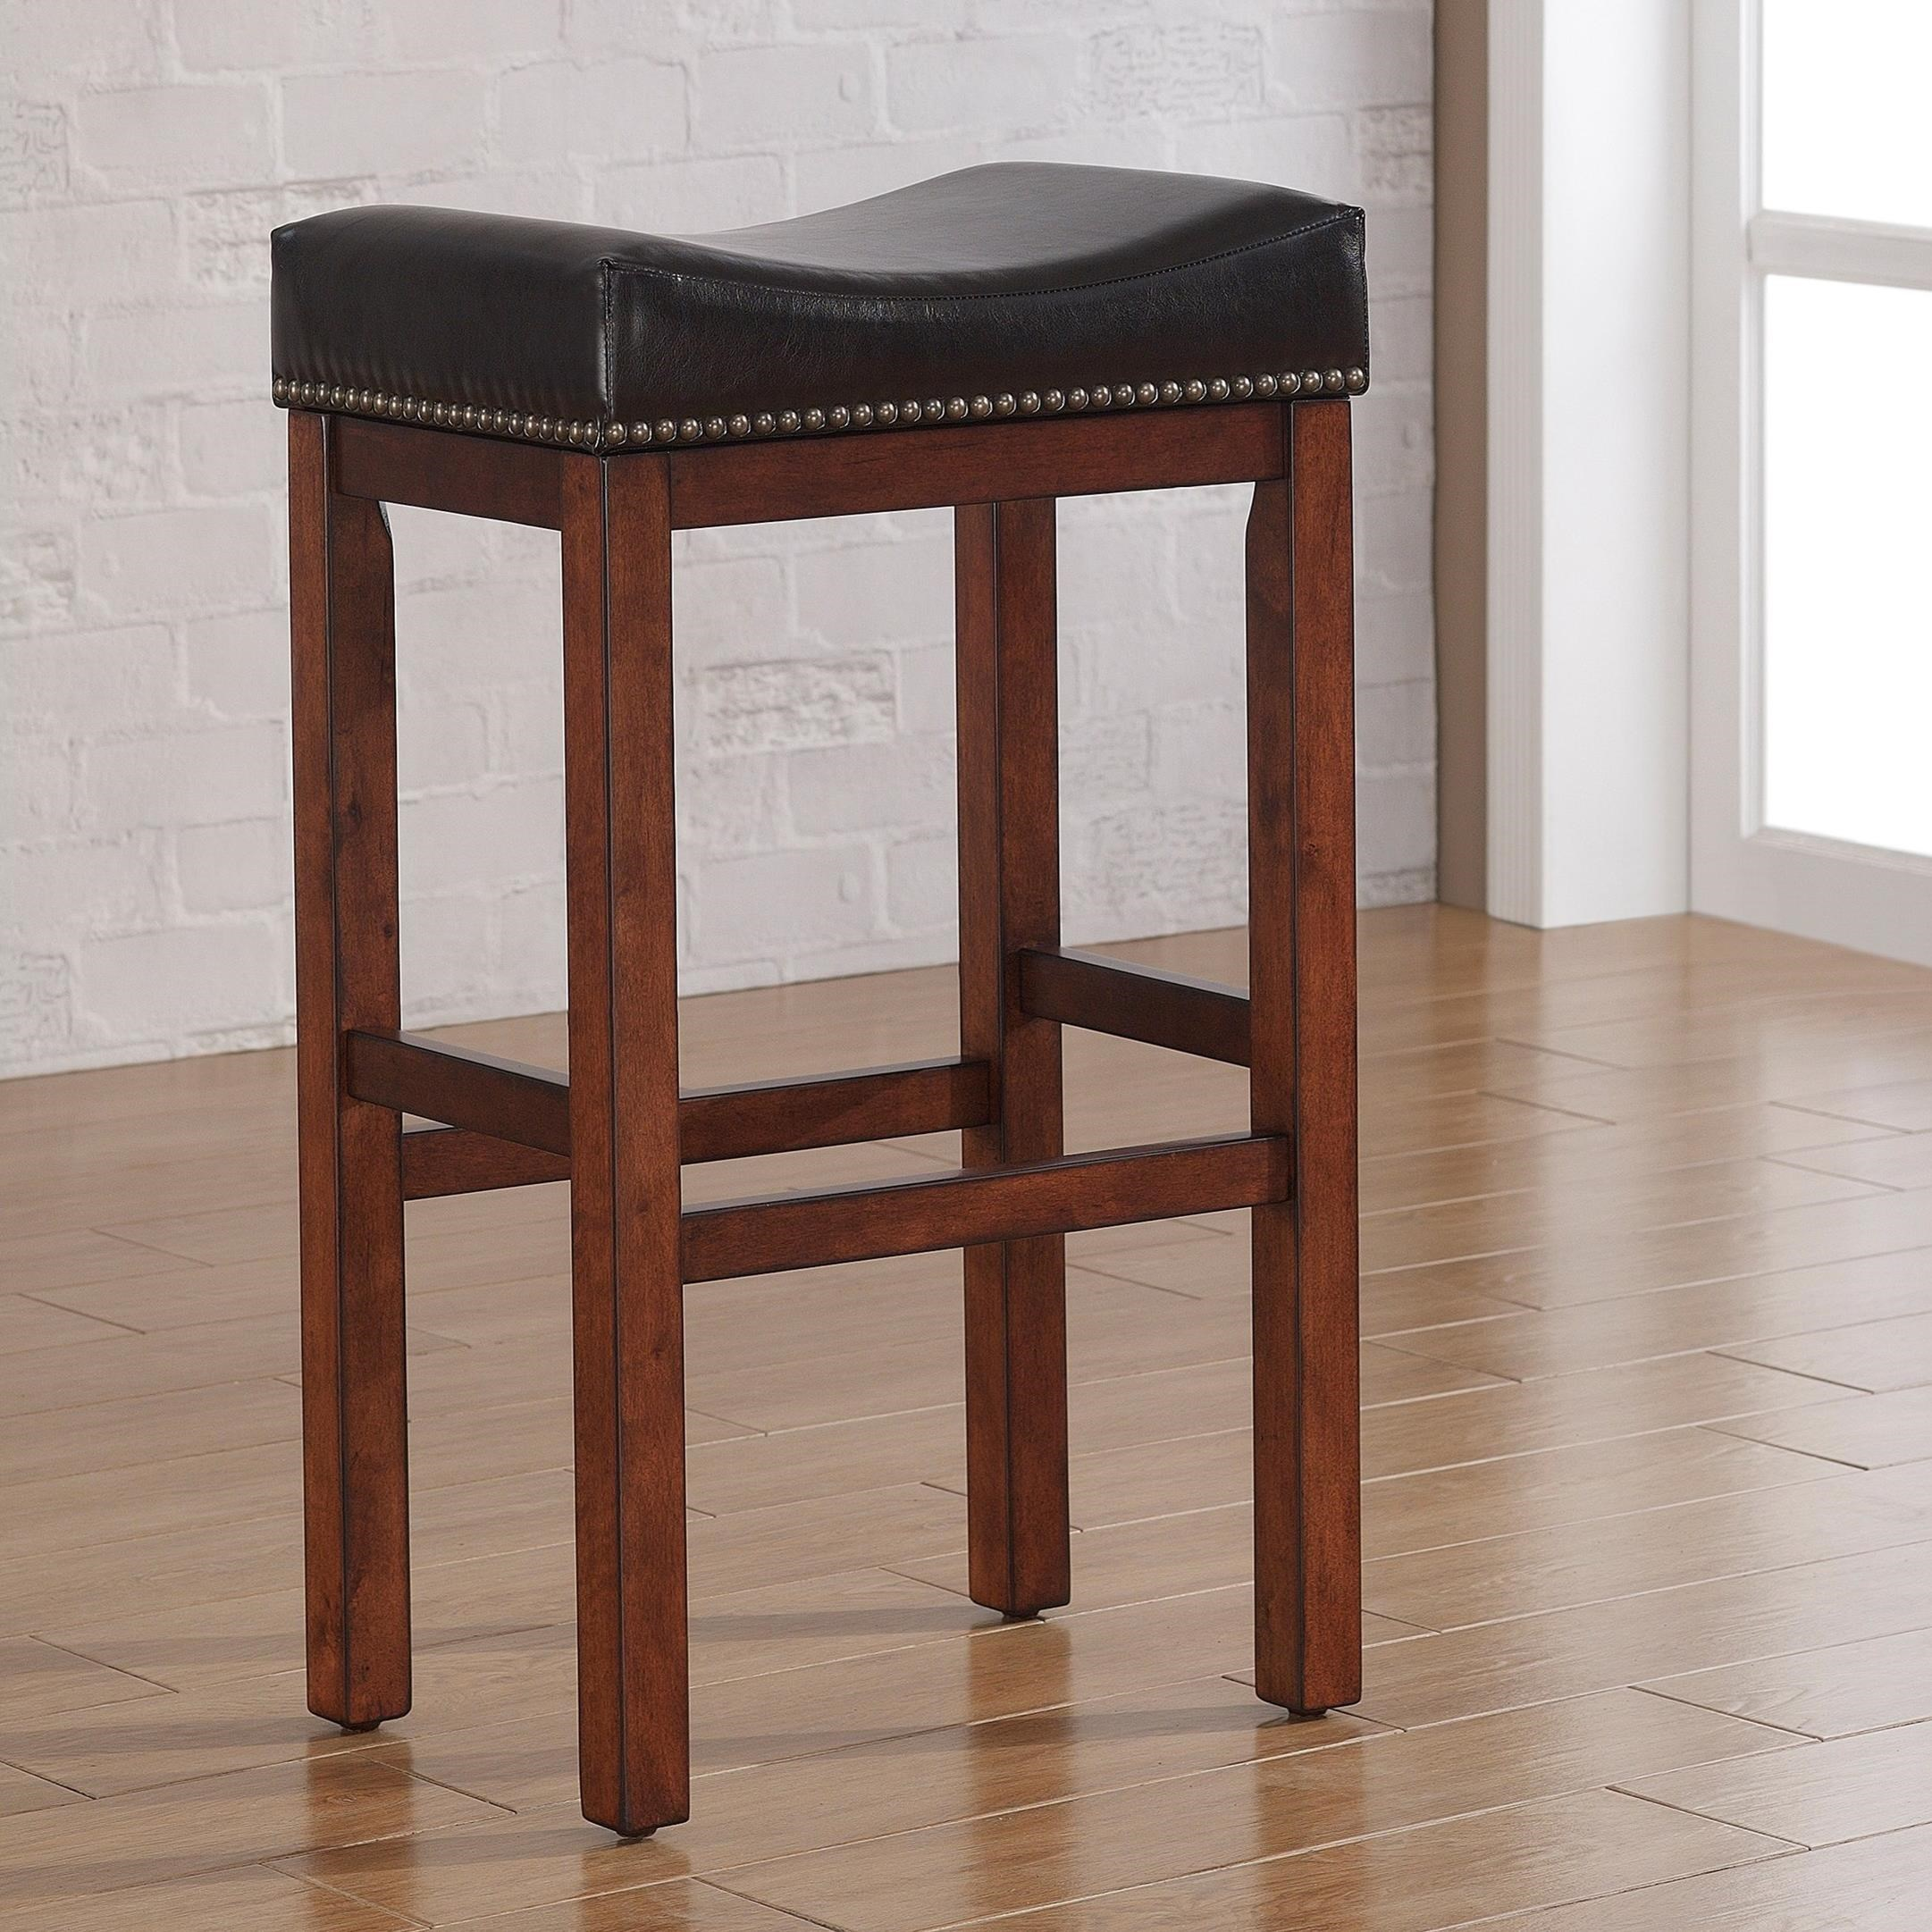 American Woodcrafters Barstools Backless Wood Stool - Item Number: B2-203-30L